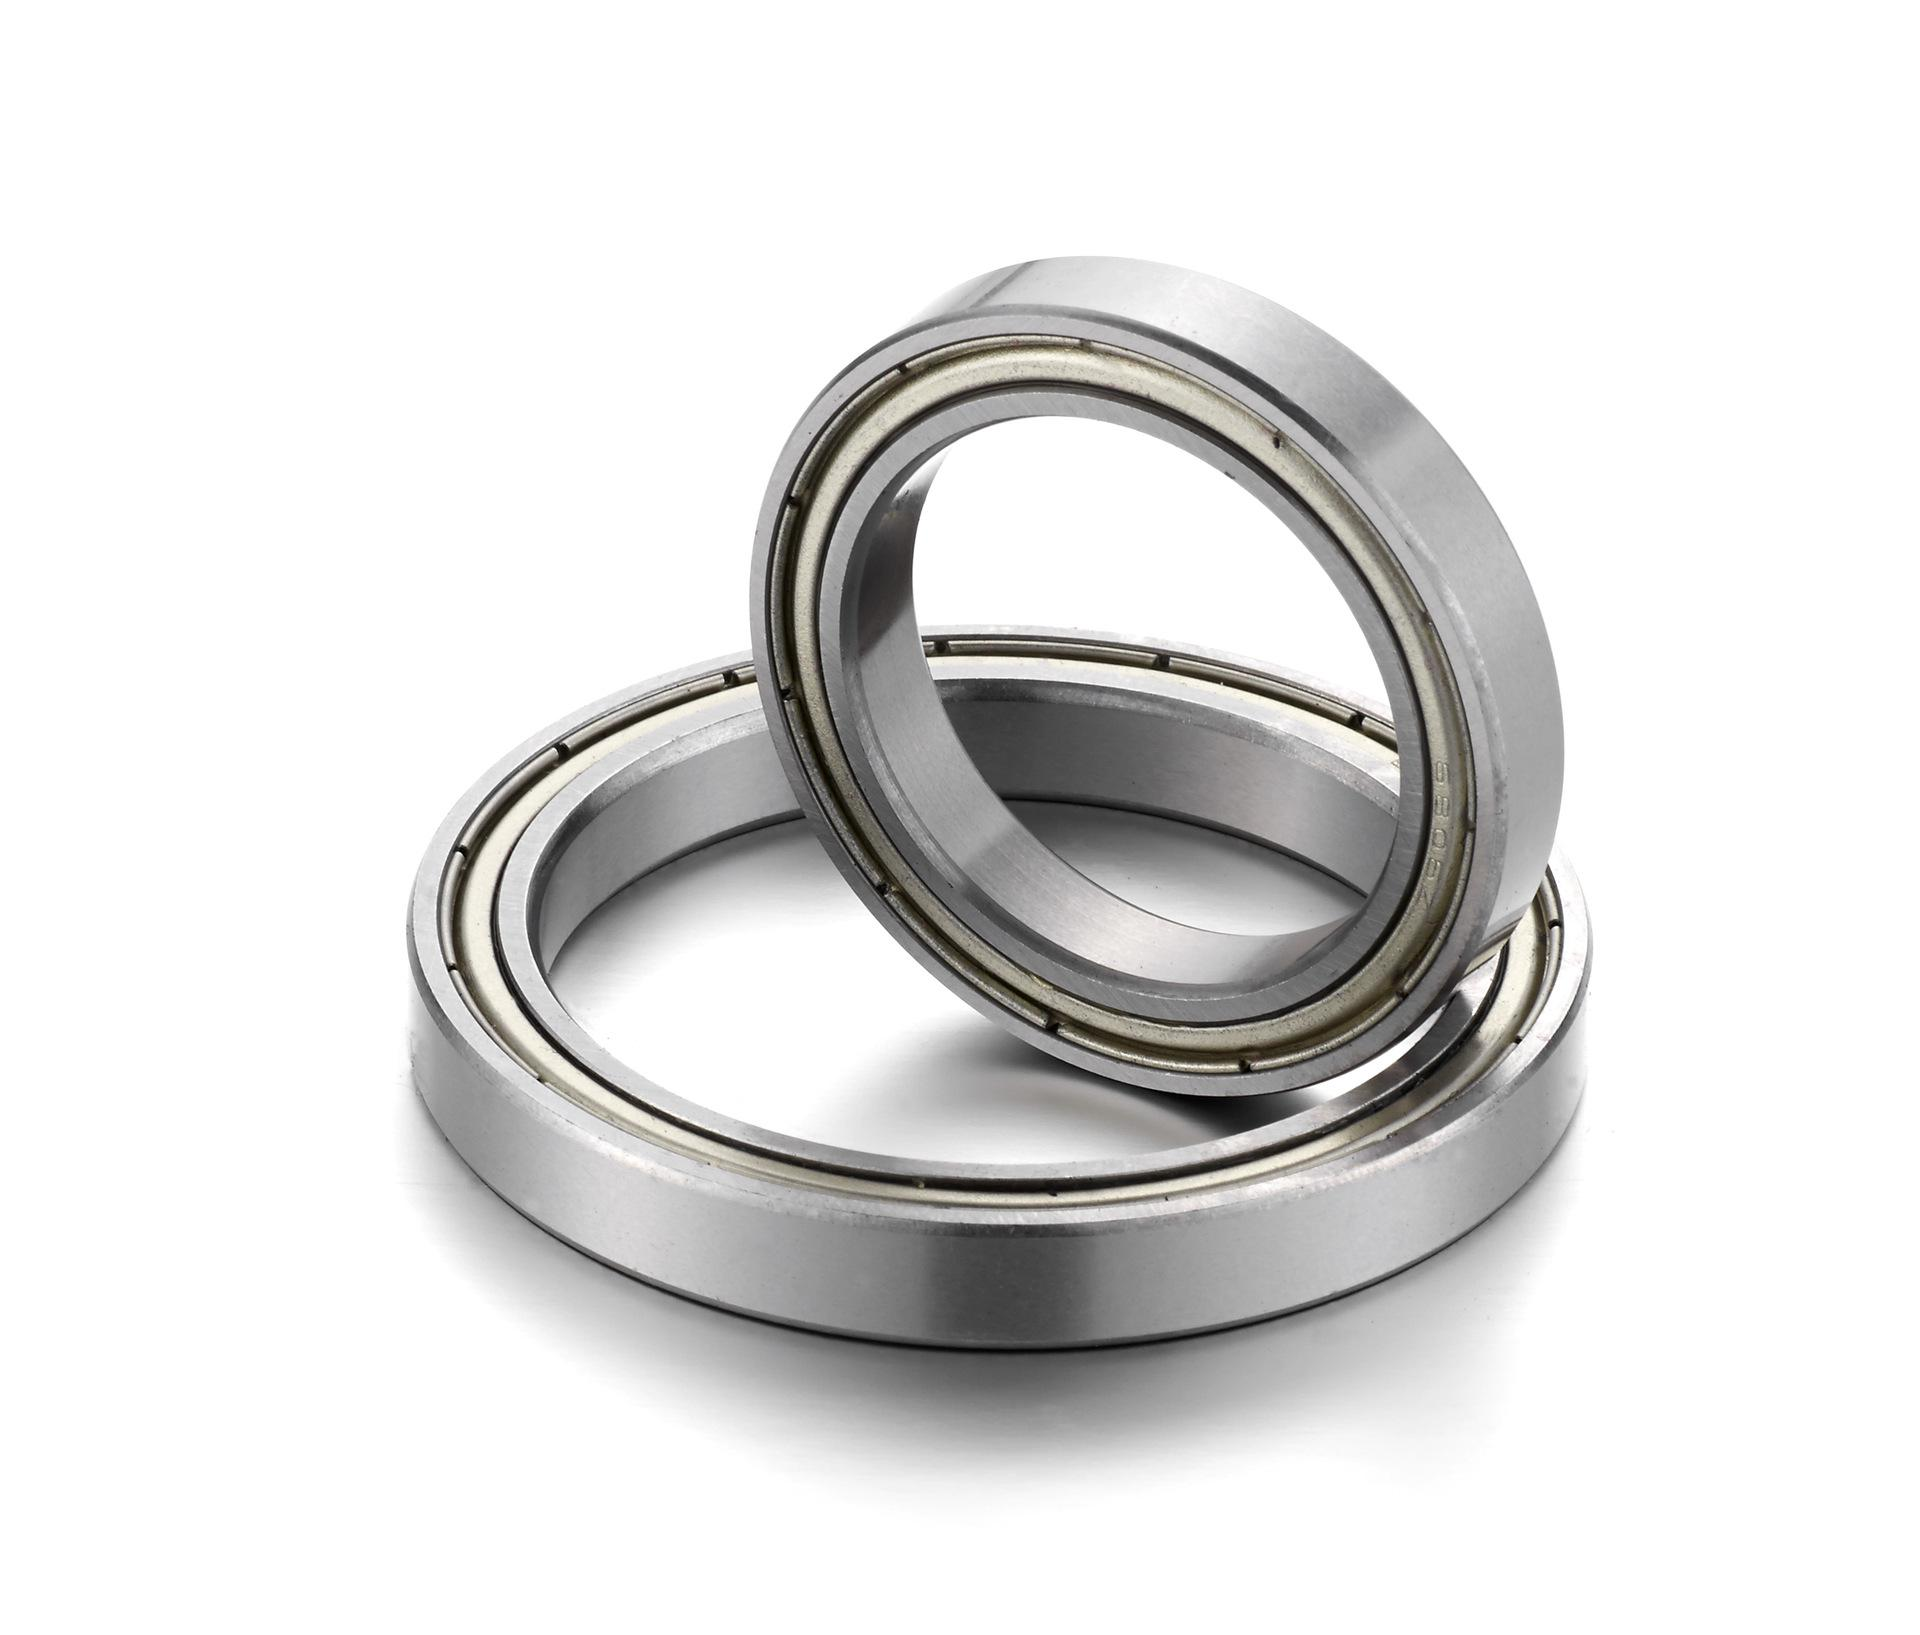 6838M 190x240x24mm Metric Thin Section Bearings 61838M brass cage 2018 hot sale time limited steel rolamentos 6821 2rs abec 1 105x130x13mm metric thin section bearings 61821 rs 6821rs